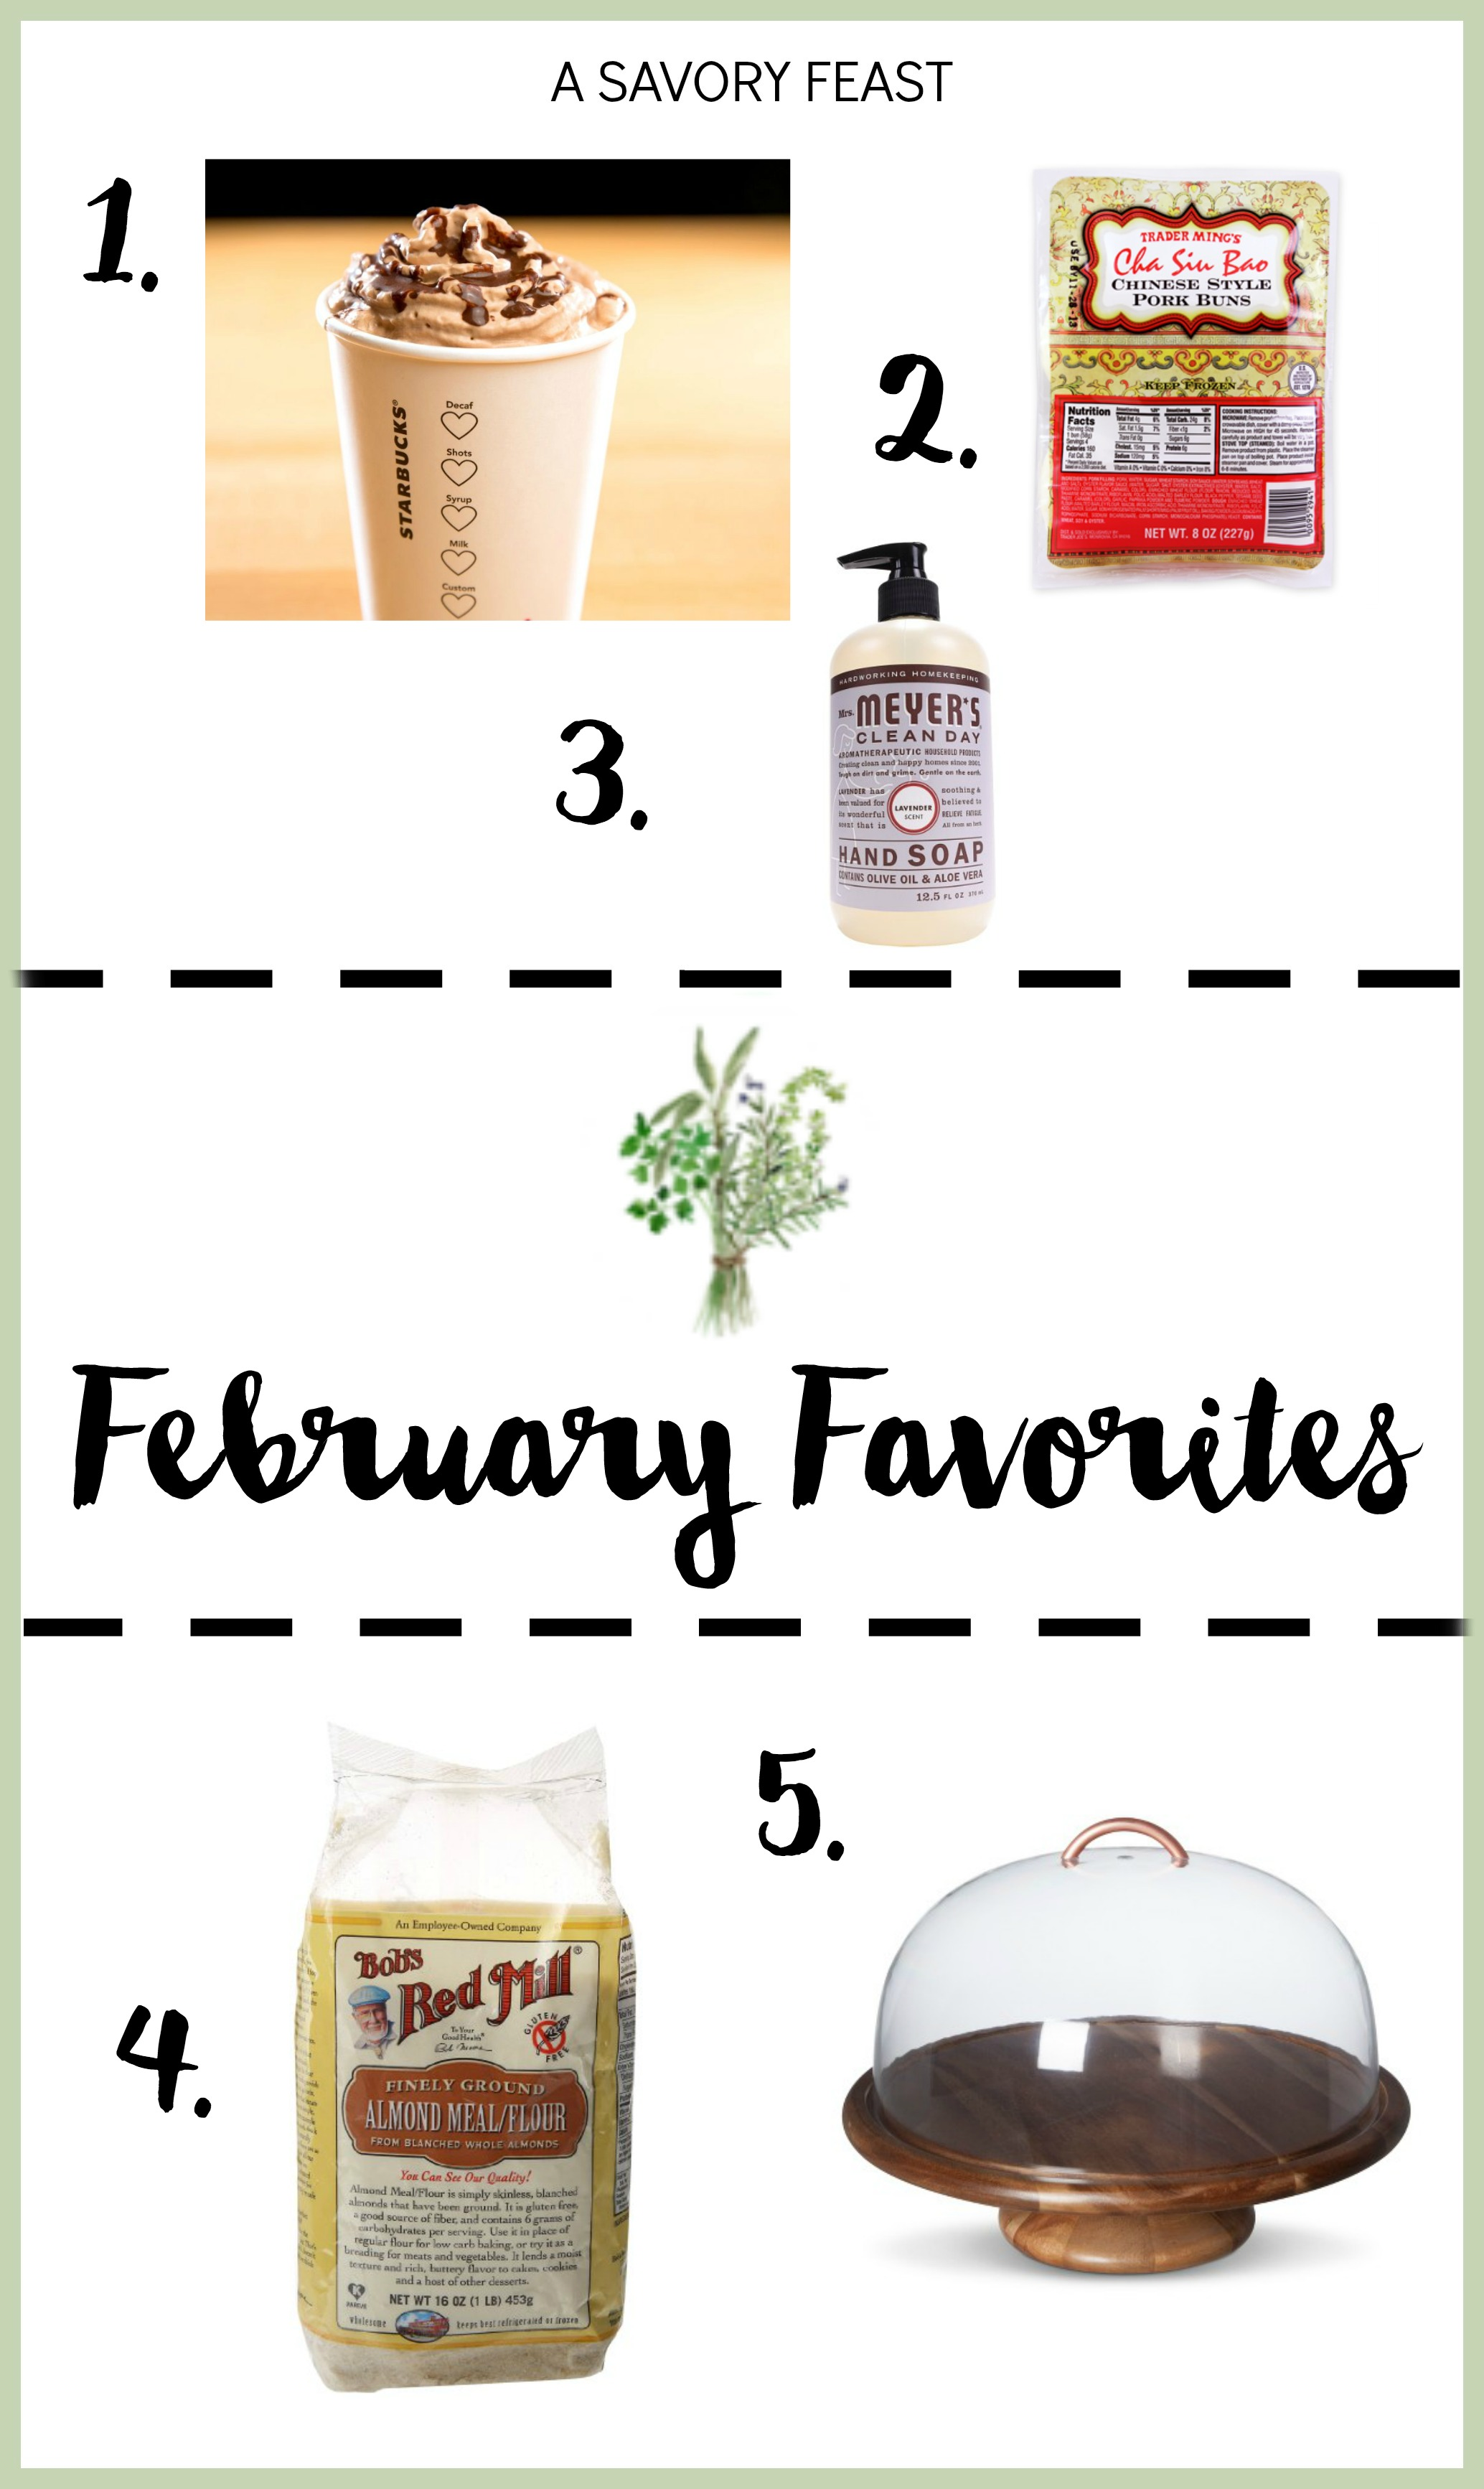 February Favorites: This month's favorite foodie products from Starbuck's Molten Chocolate Latte to a Target Cake Stand.